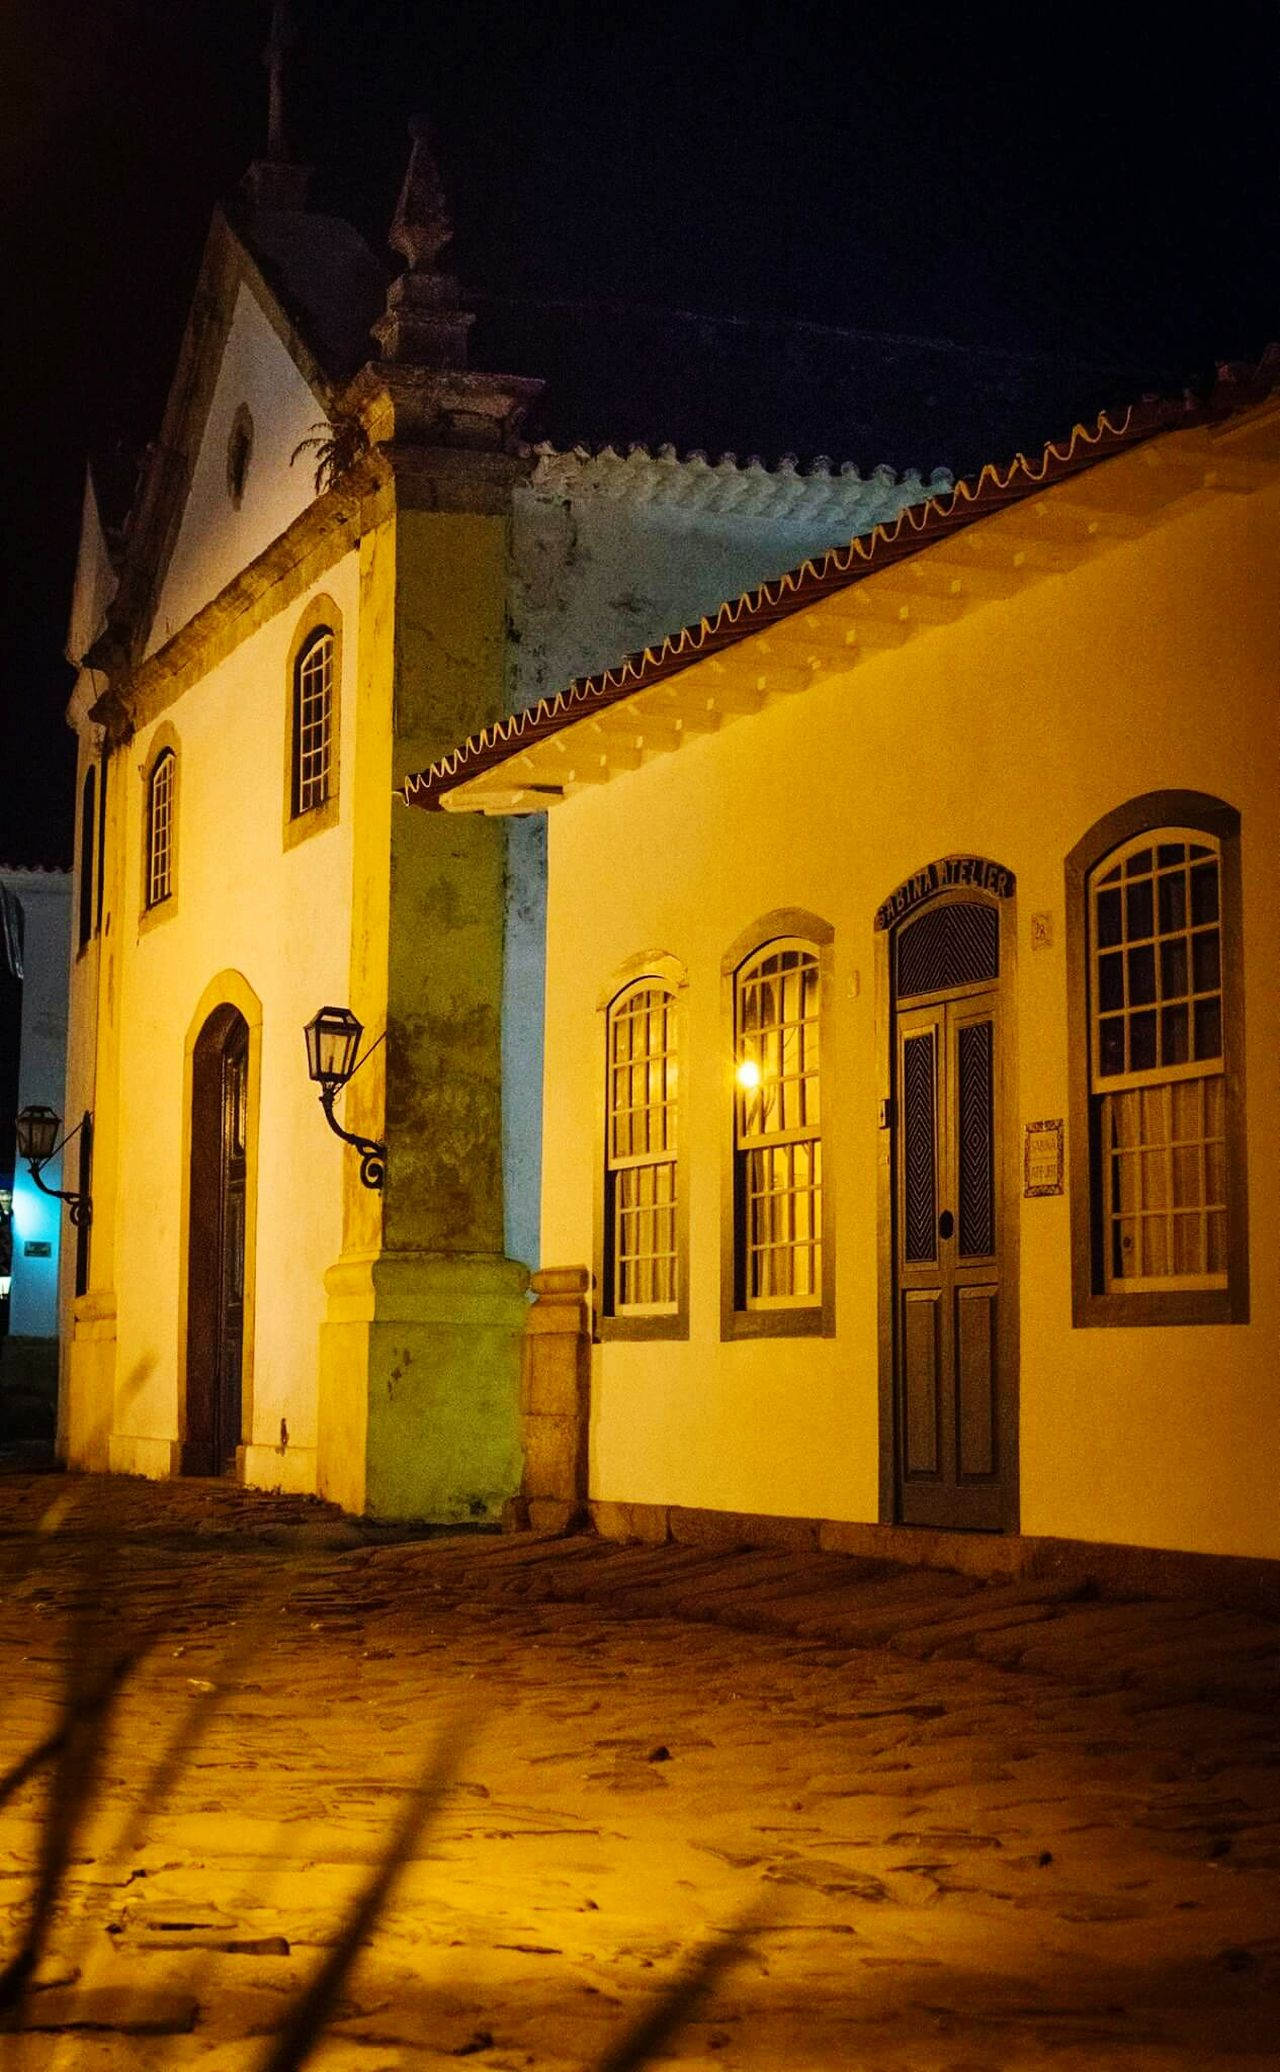 Architecture Built Structure Building Exterior Arch No People Night Outdoors Church Doors Door DoorsAndWindowsProject Paraty - RJ Paraty- Rj Paraty, Brazil Nightphotography Night Photography Night Lights Night Out Historic Historiccenter